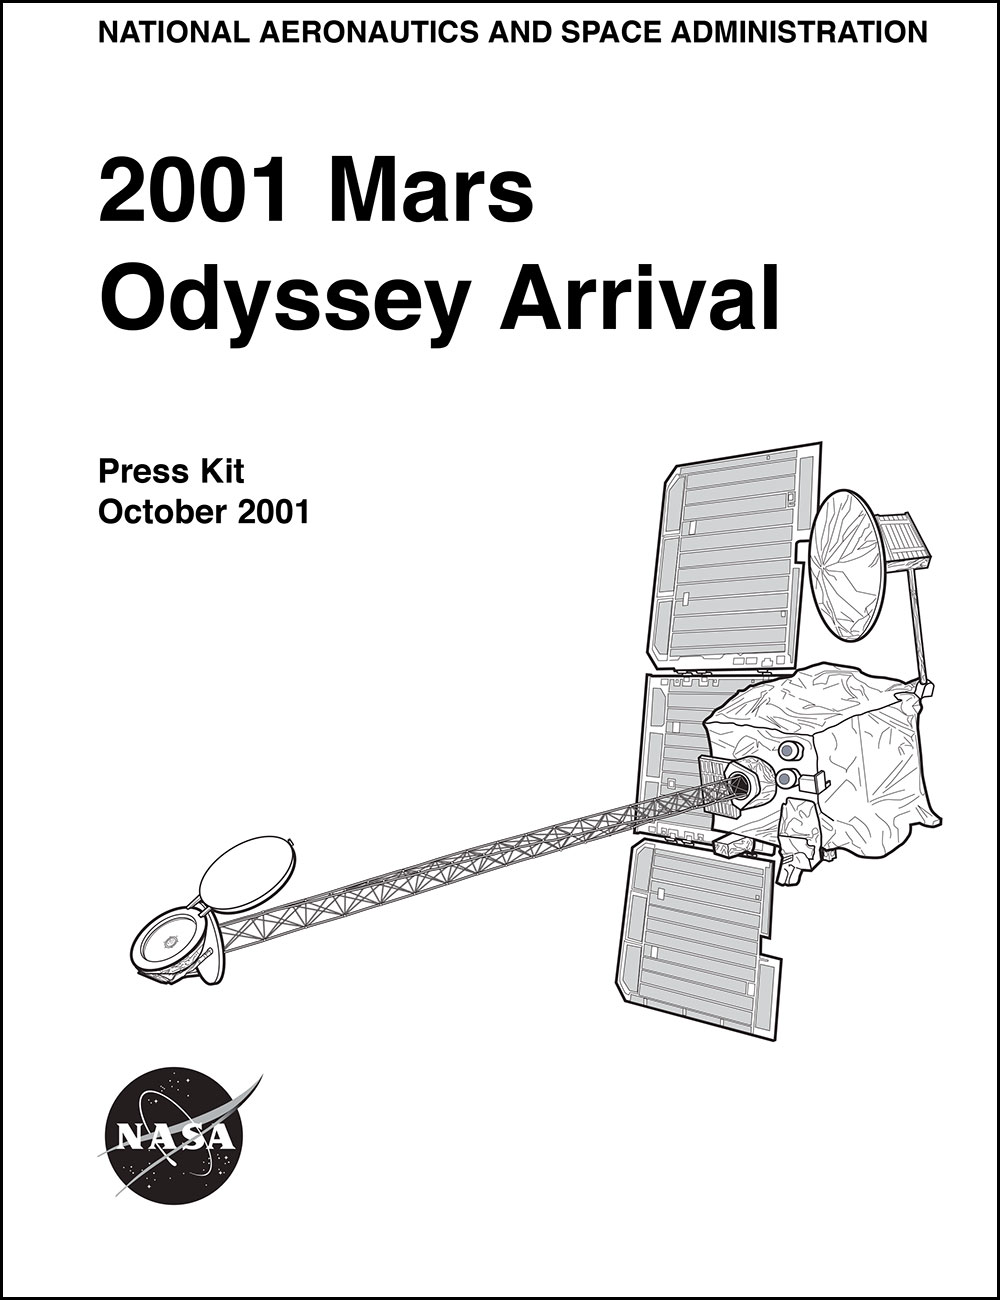 Odyssey arrival press kit